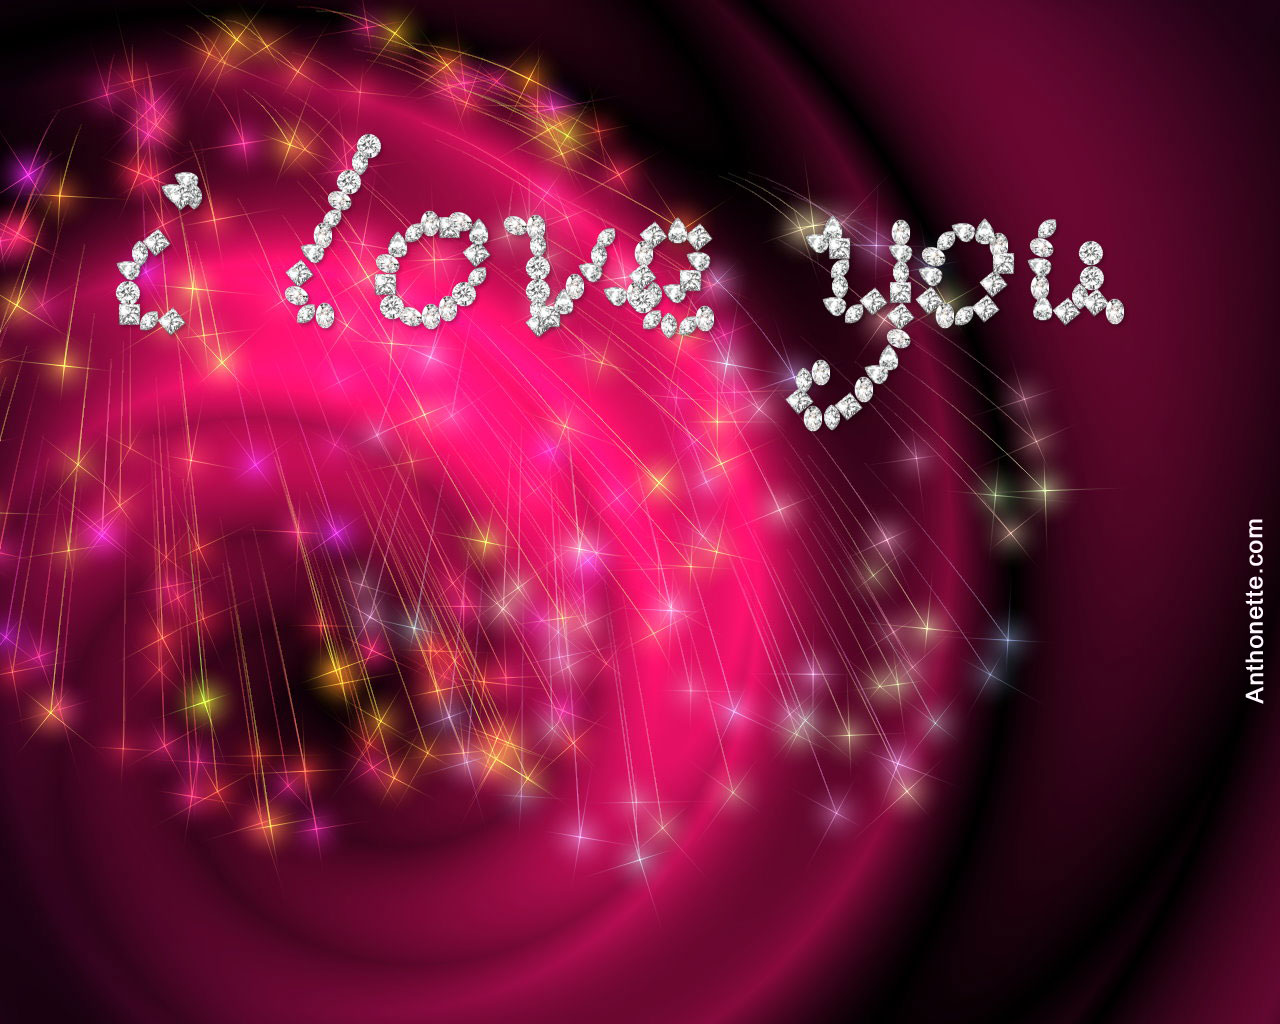 Love You Wallpaper Mobile : love wallpapers for mobile phone -mobile wallpaper part 4 ...